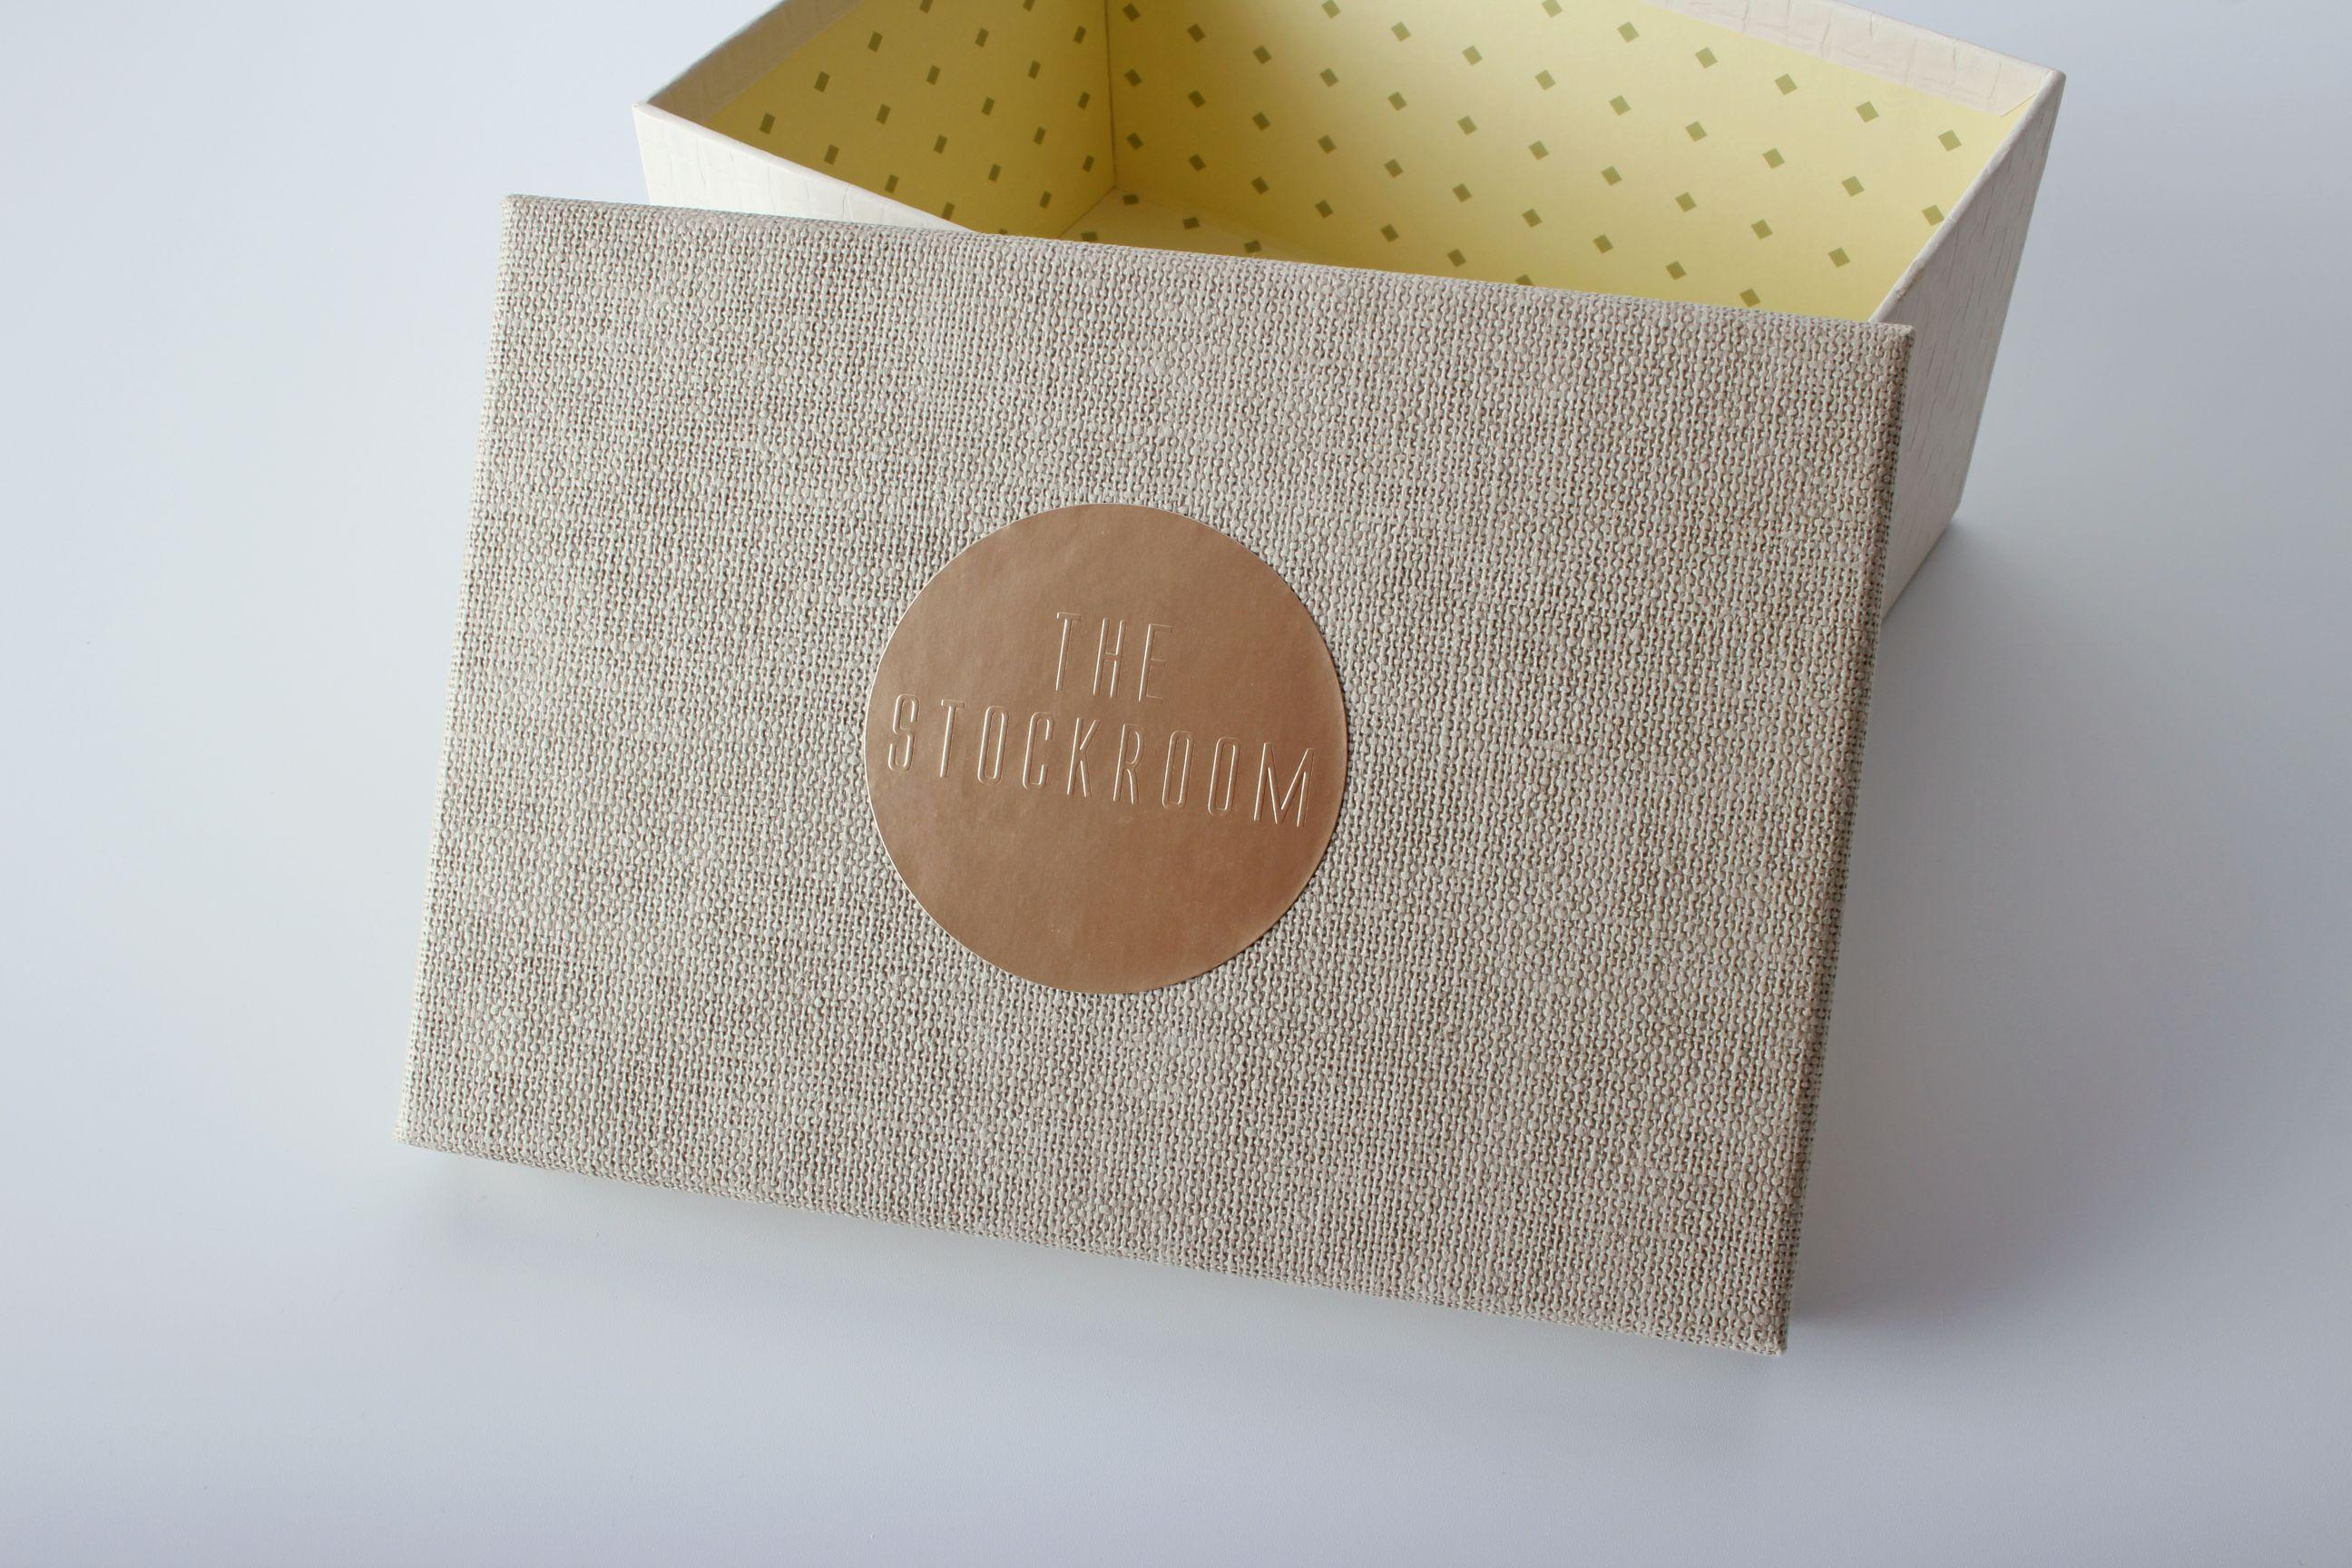 Custom Silver/Gold Embossed Paper Stickers